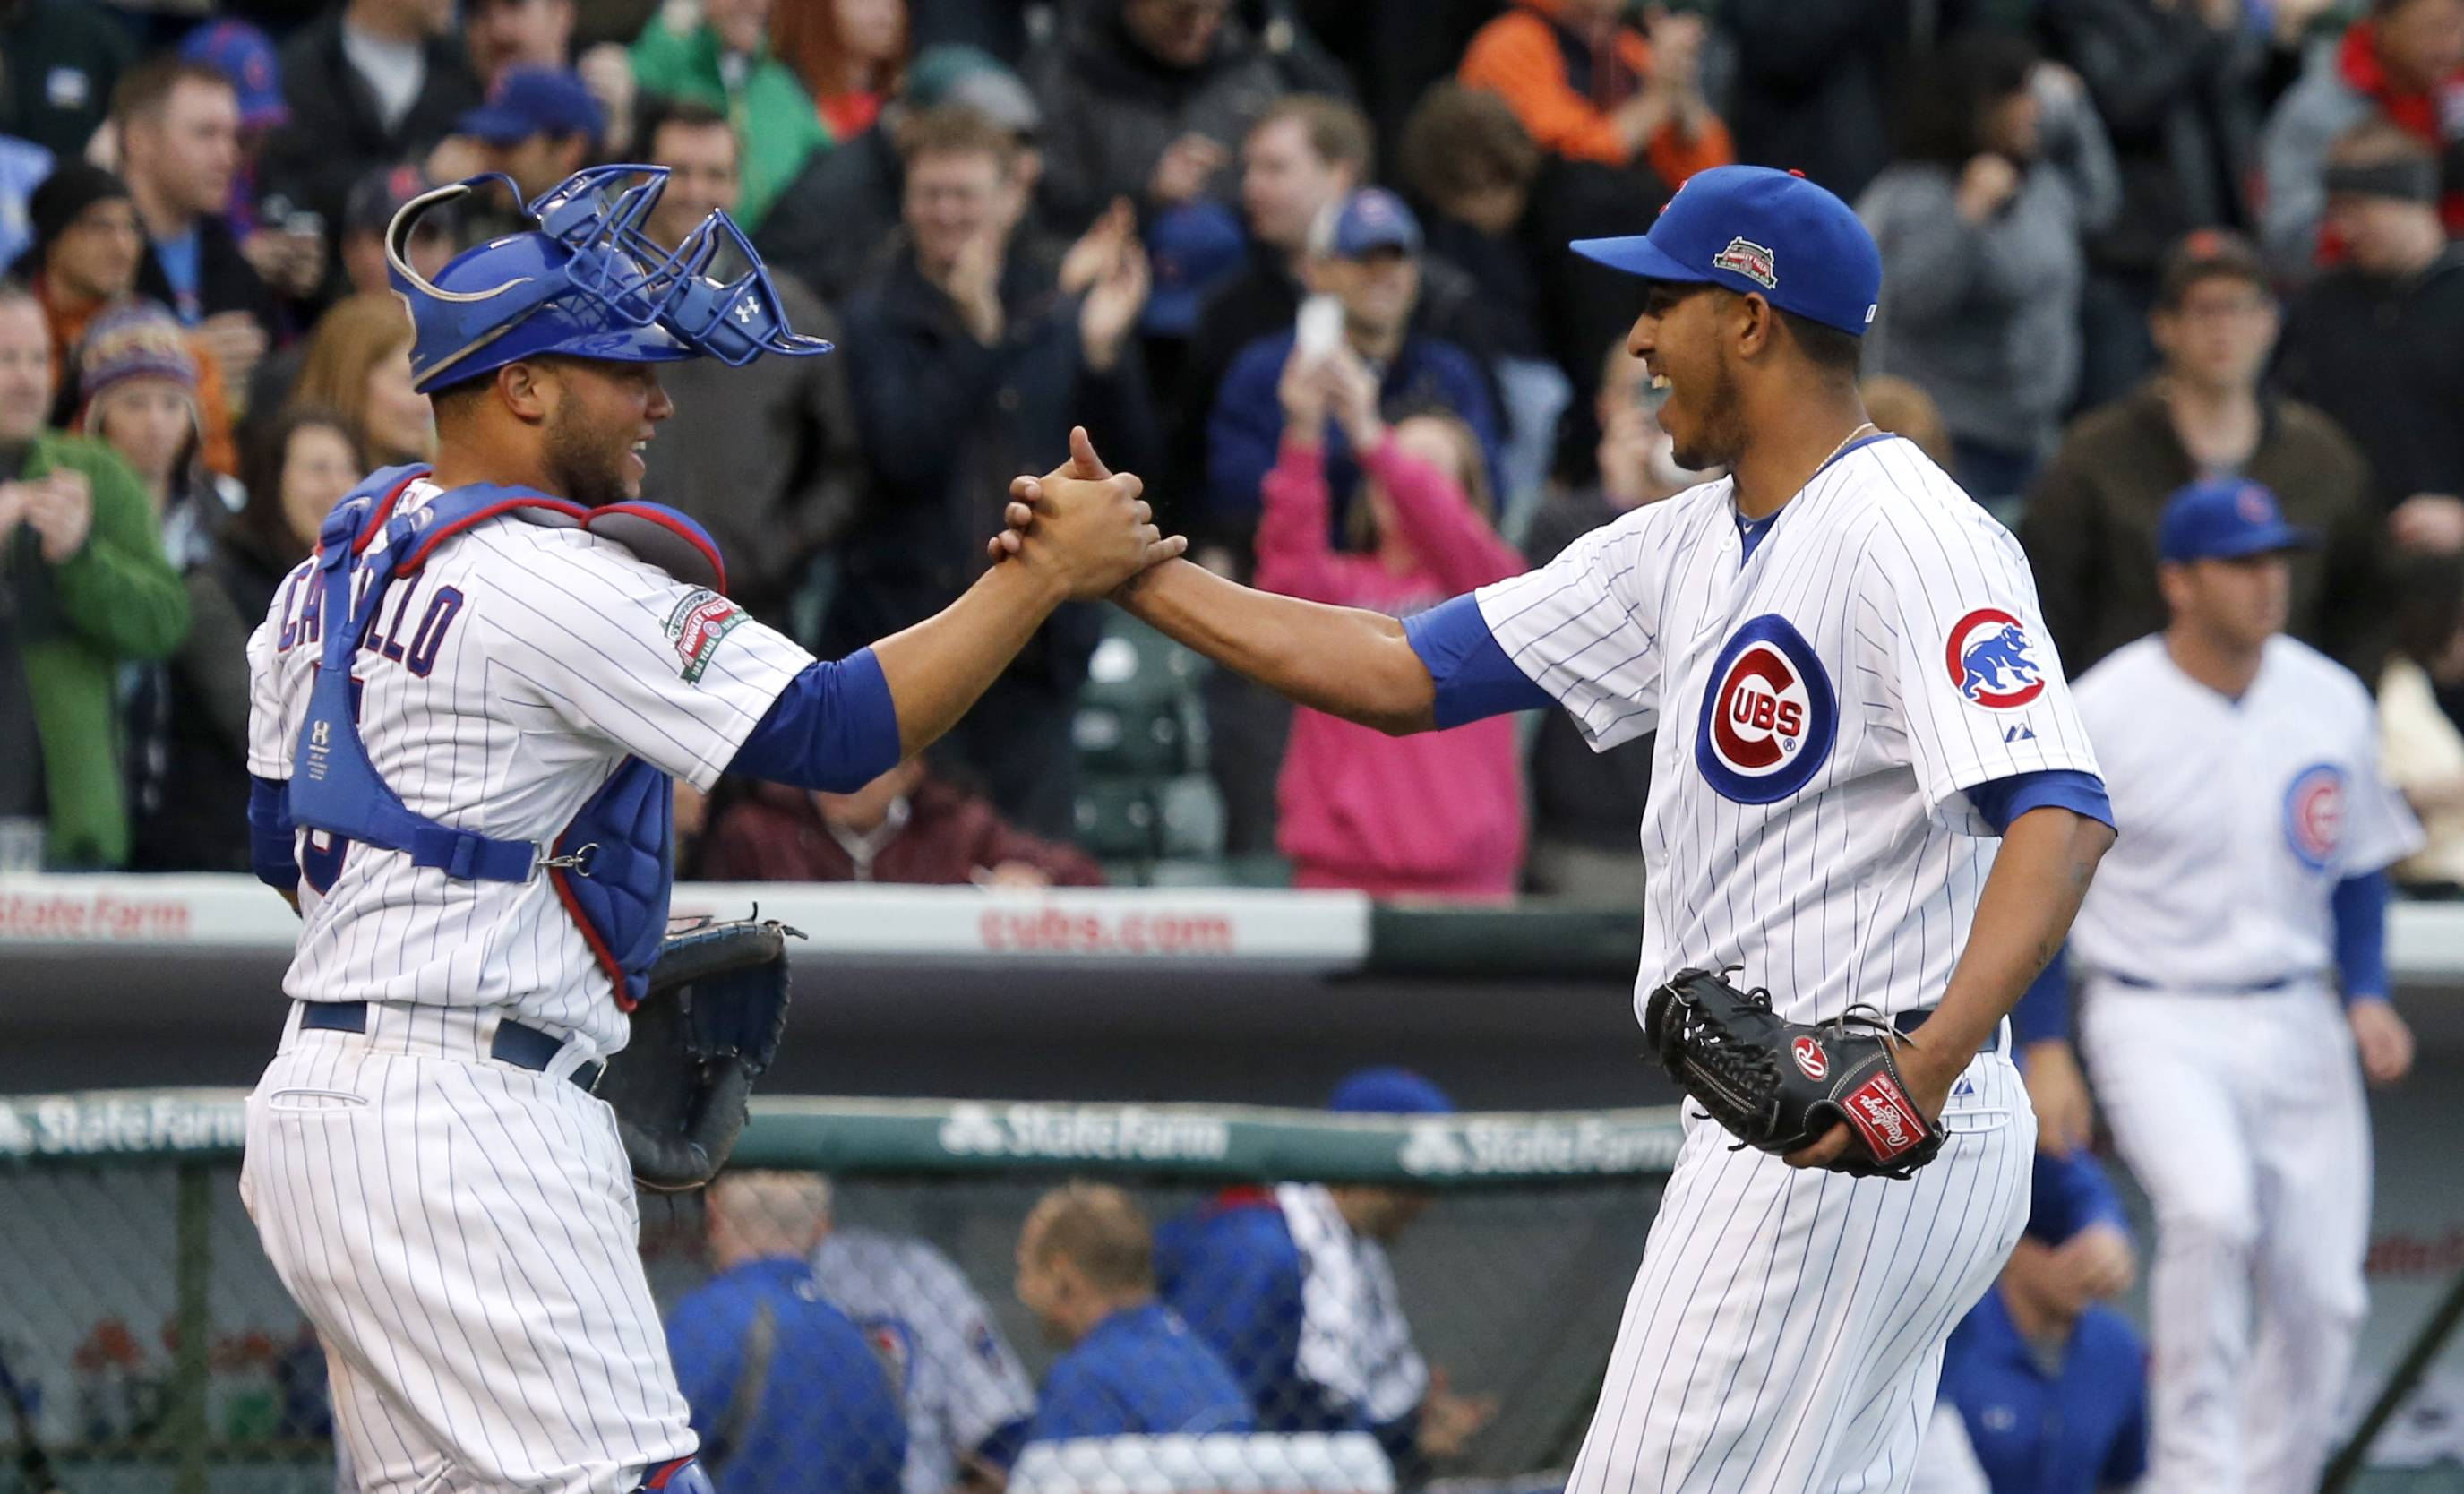 Chicago Cubs relief pitcher Hector Rondon, right, celebrates with catcher Welington Castillo, after their 6-5 win over the St. Louis Cardinals in a baseball game Friday, May 2, 2014, in Chicago.